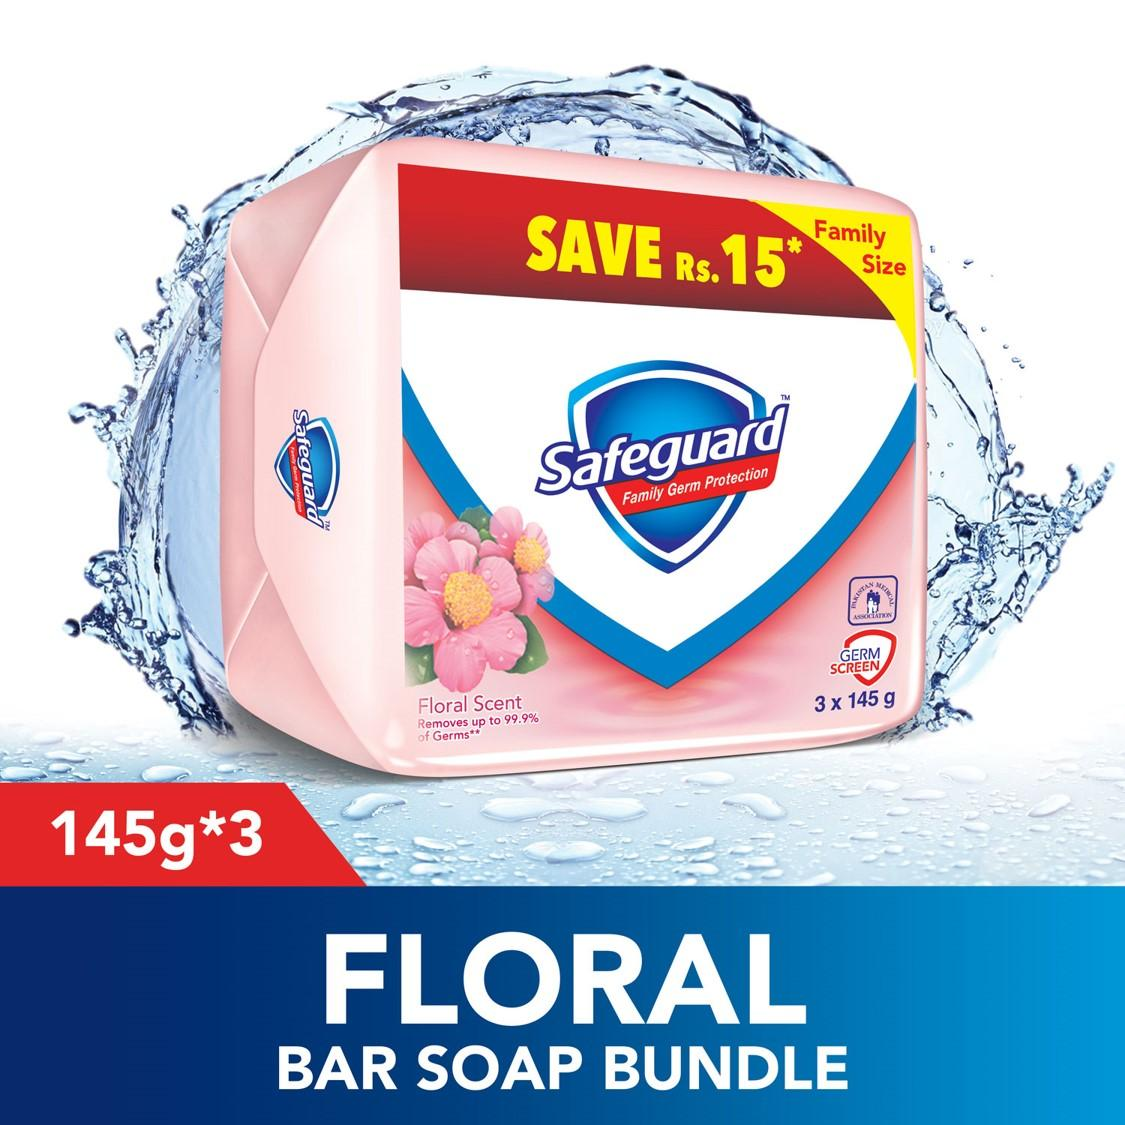 Buy Soap Shower Gels Best Price In Pakistan Pure Baby Laundry Liquid Refill 2 Get 3 700 Ml Safeguard Floral Scent Bar 145gm Bundle Of